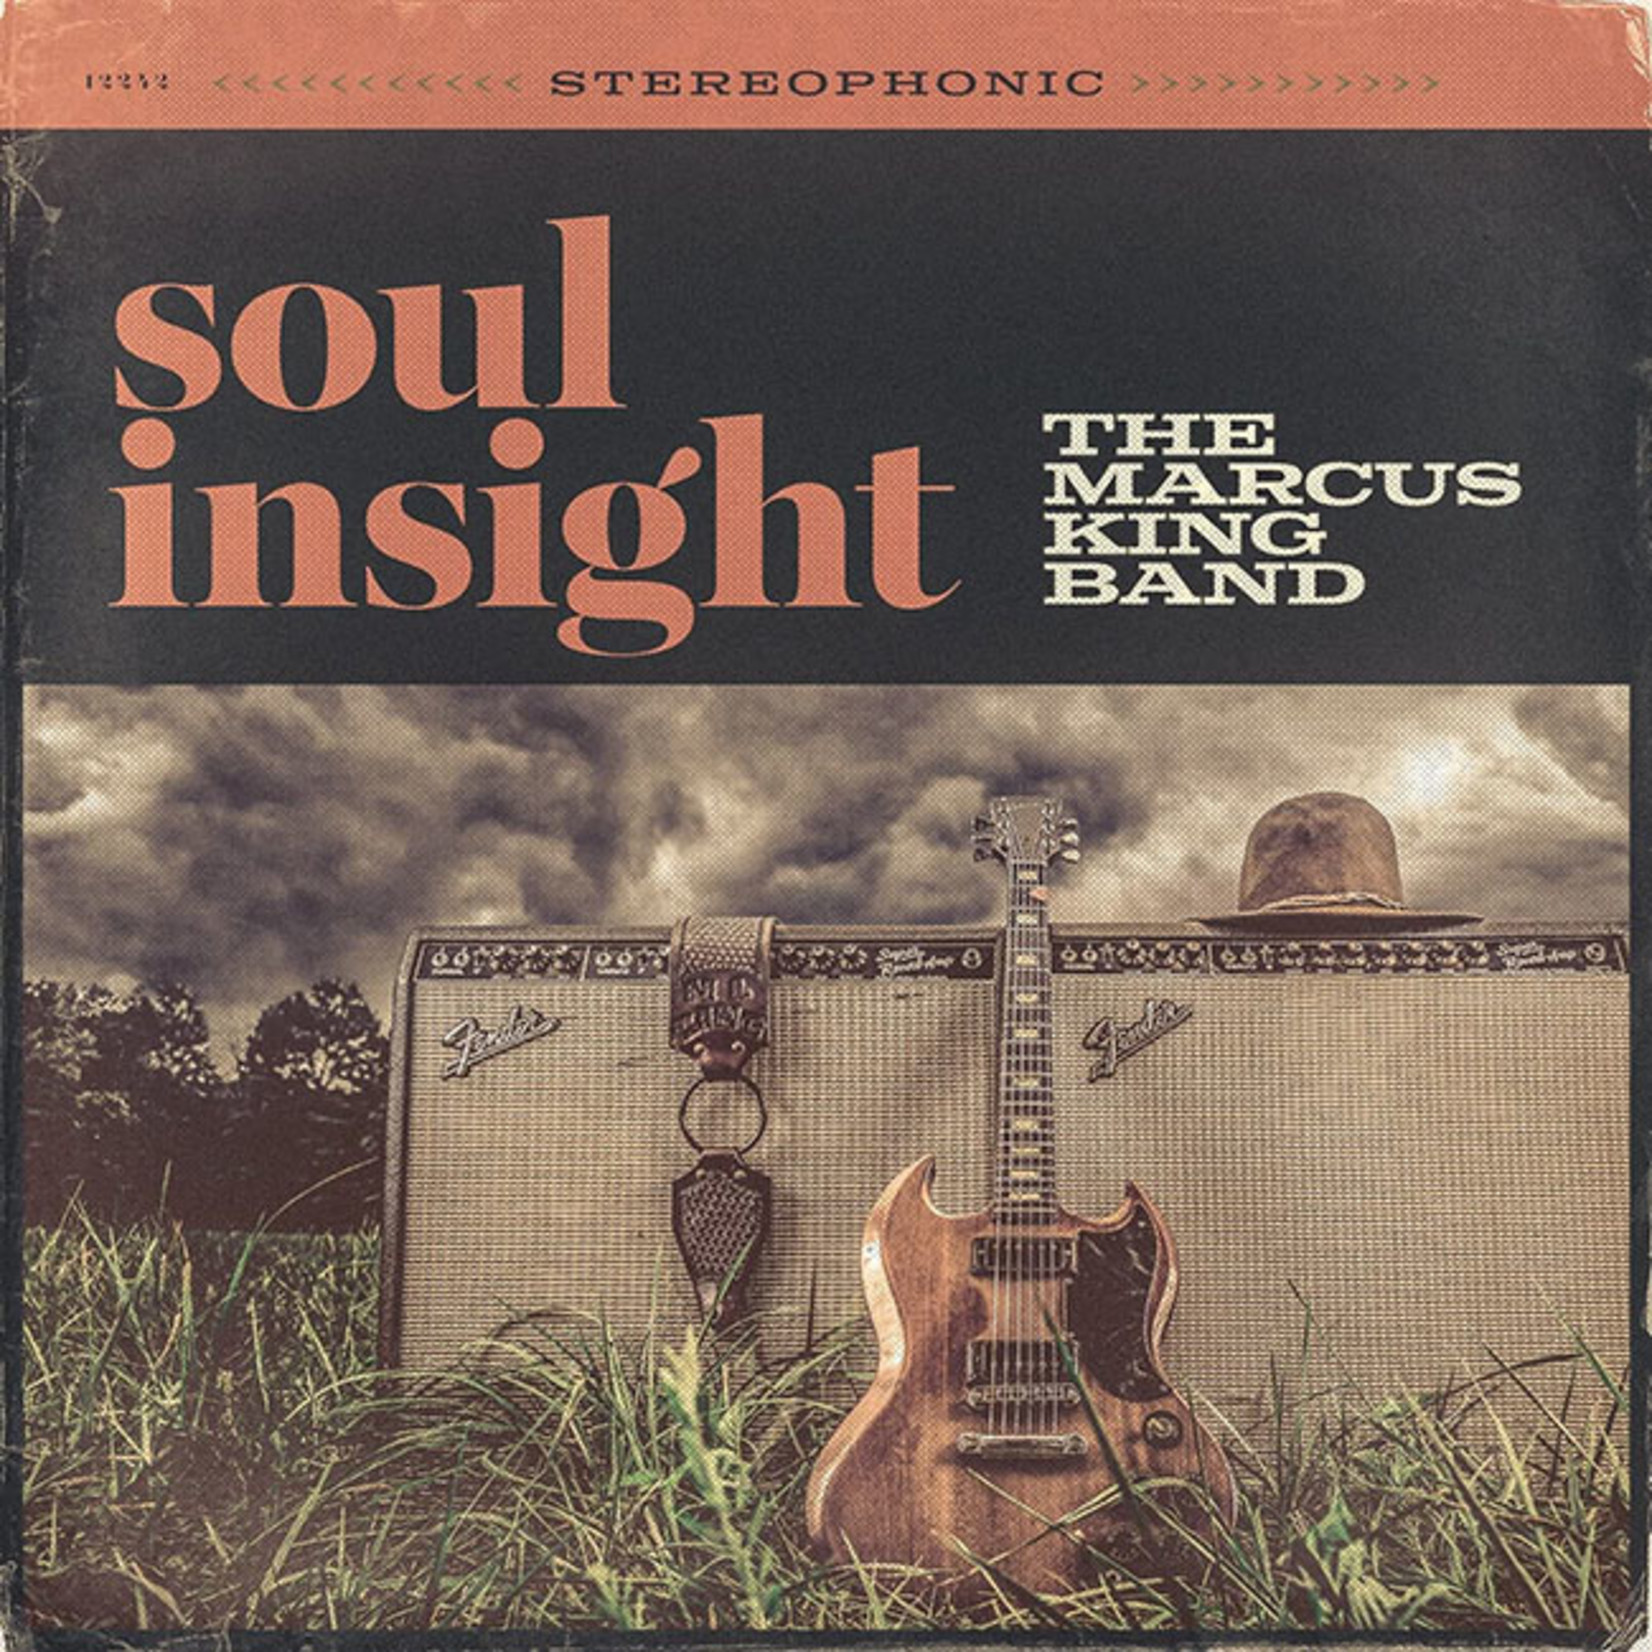 [New] King, Marcus, Band: Soul Insight